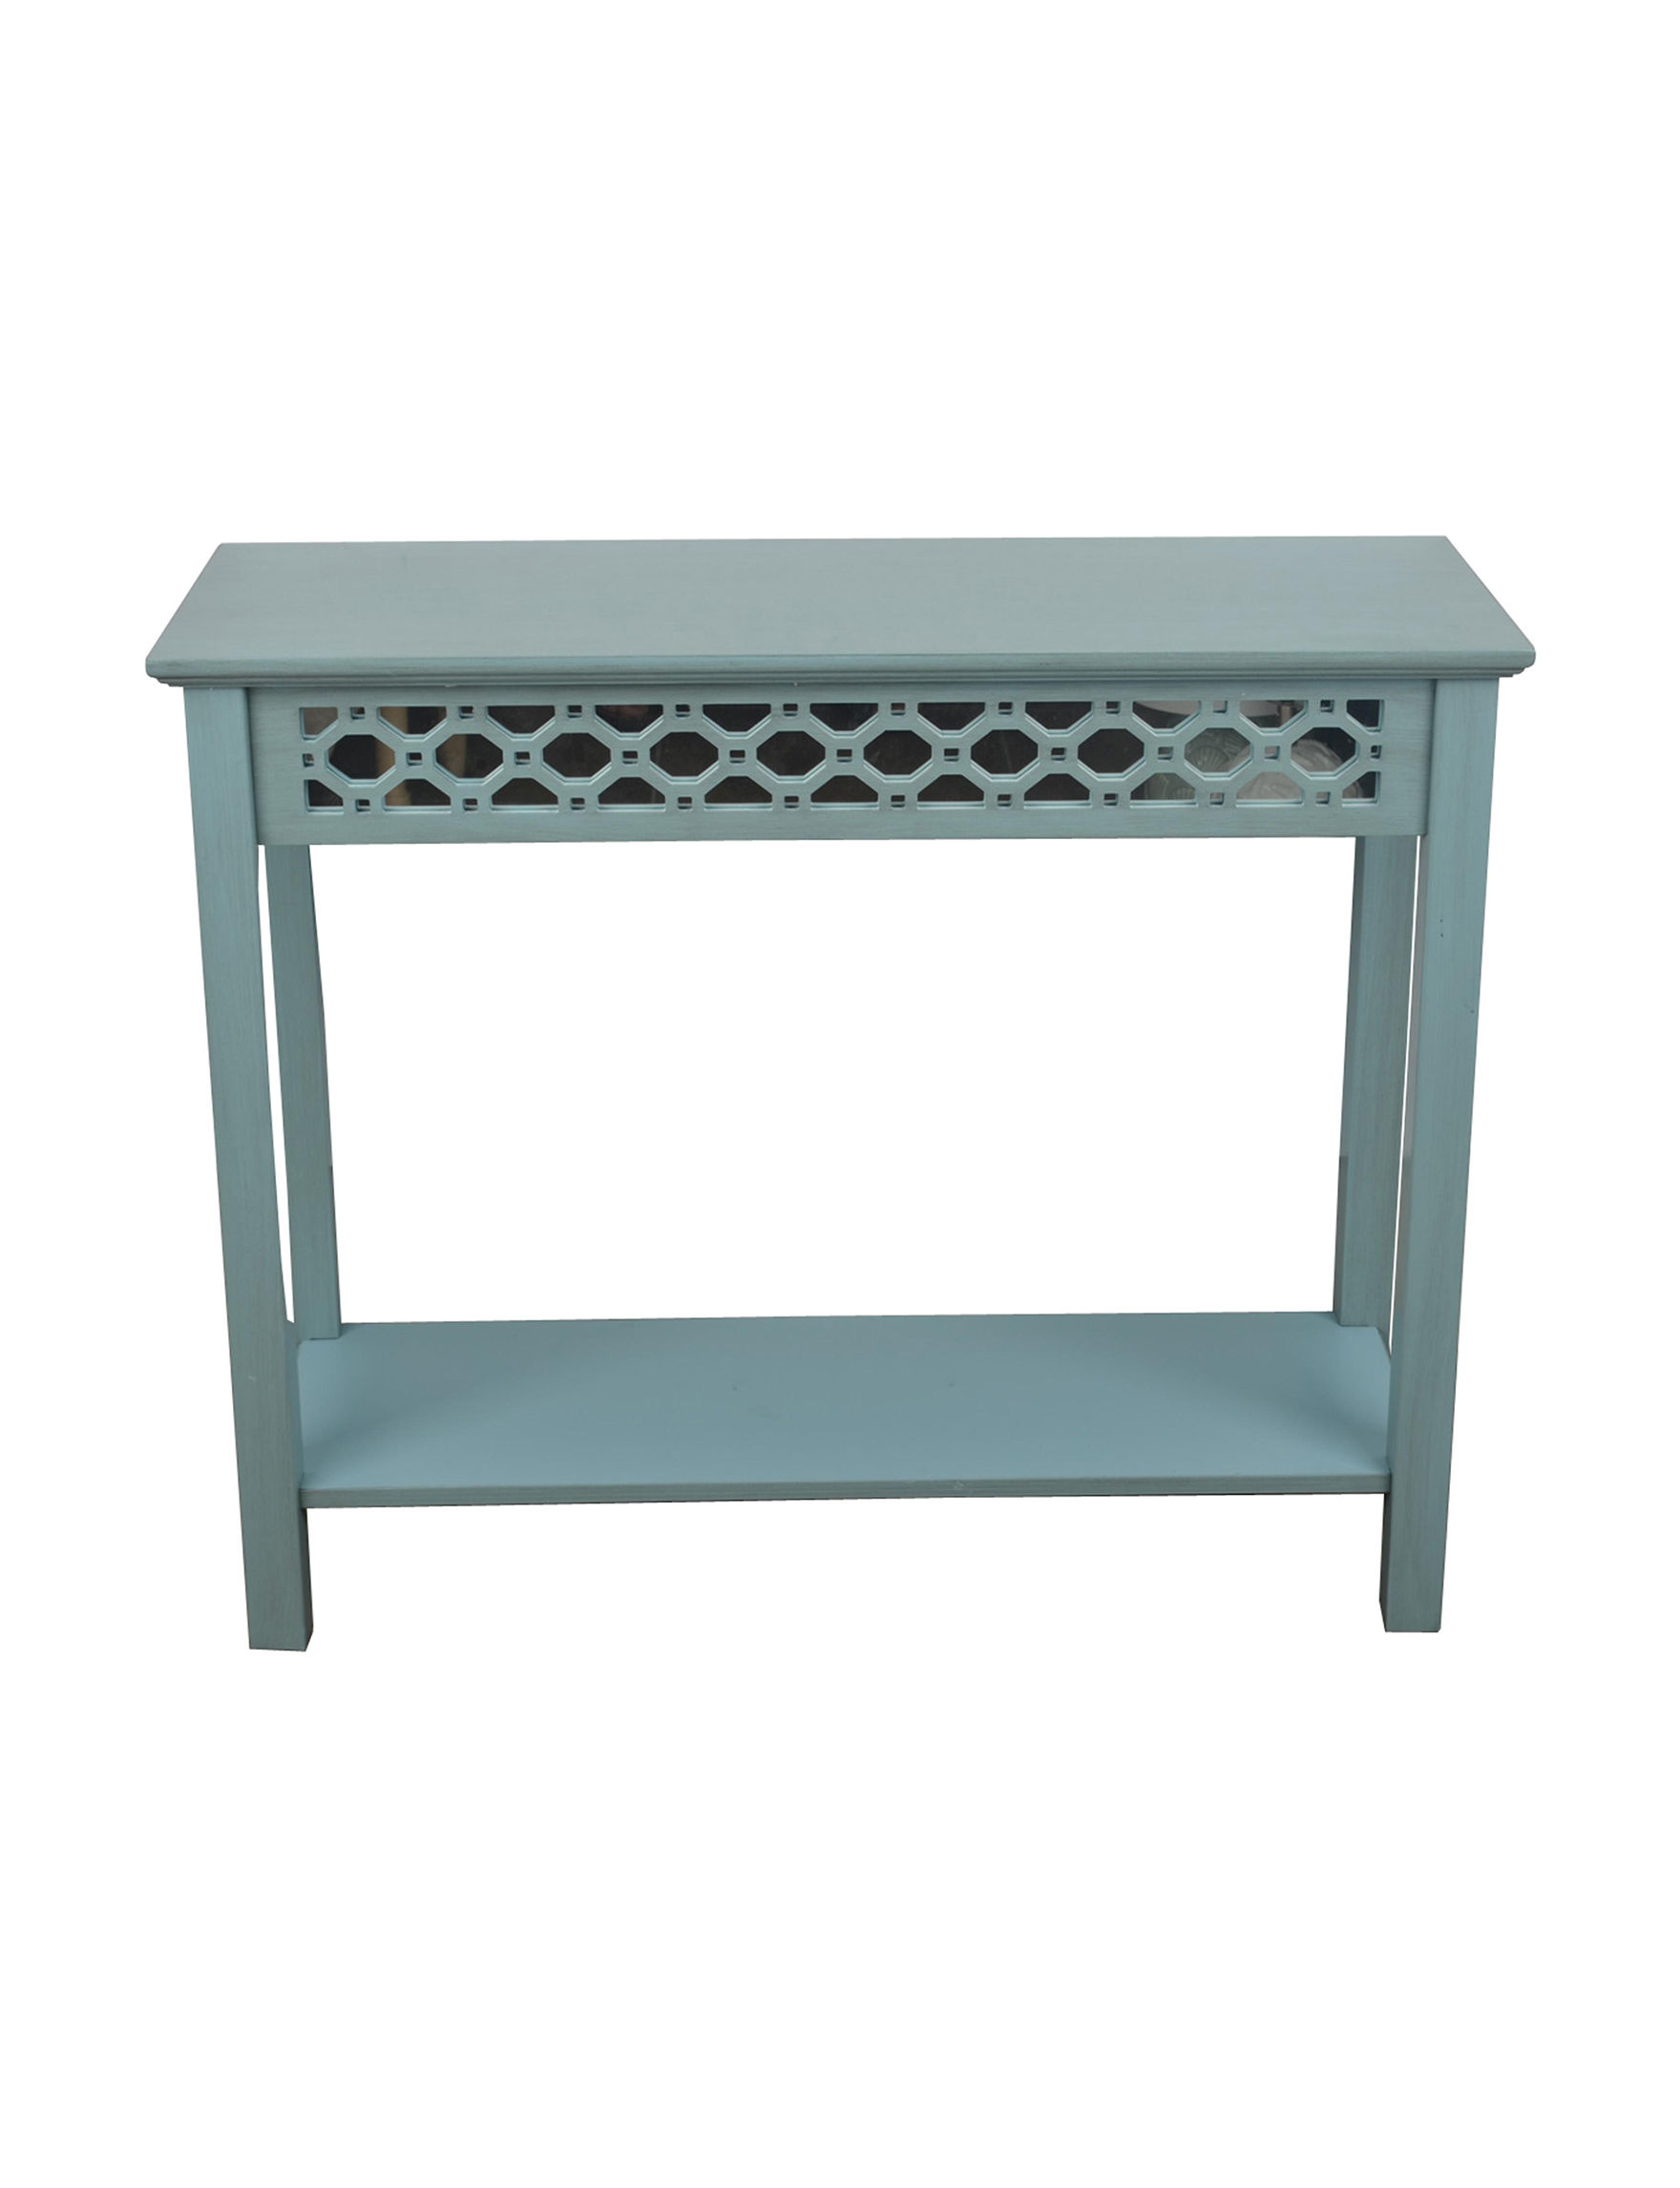 Decor Therapy Blue Accent & End Tables Entryway Furniture Home Office Furniture Living Room Furniture